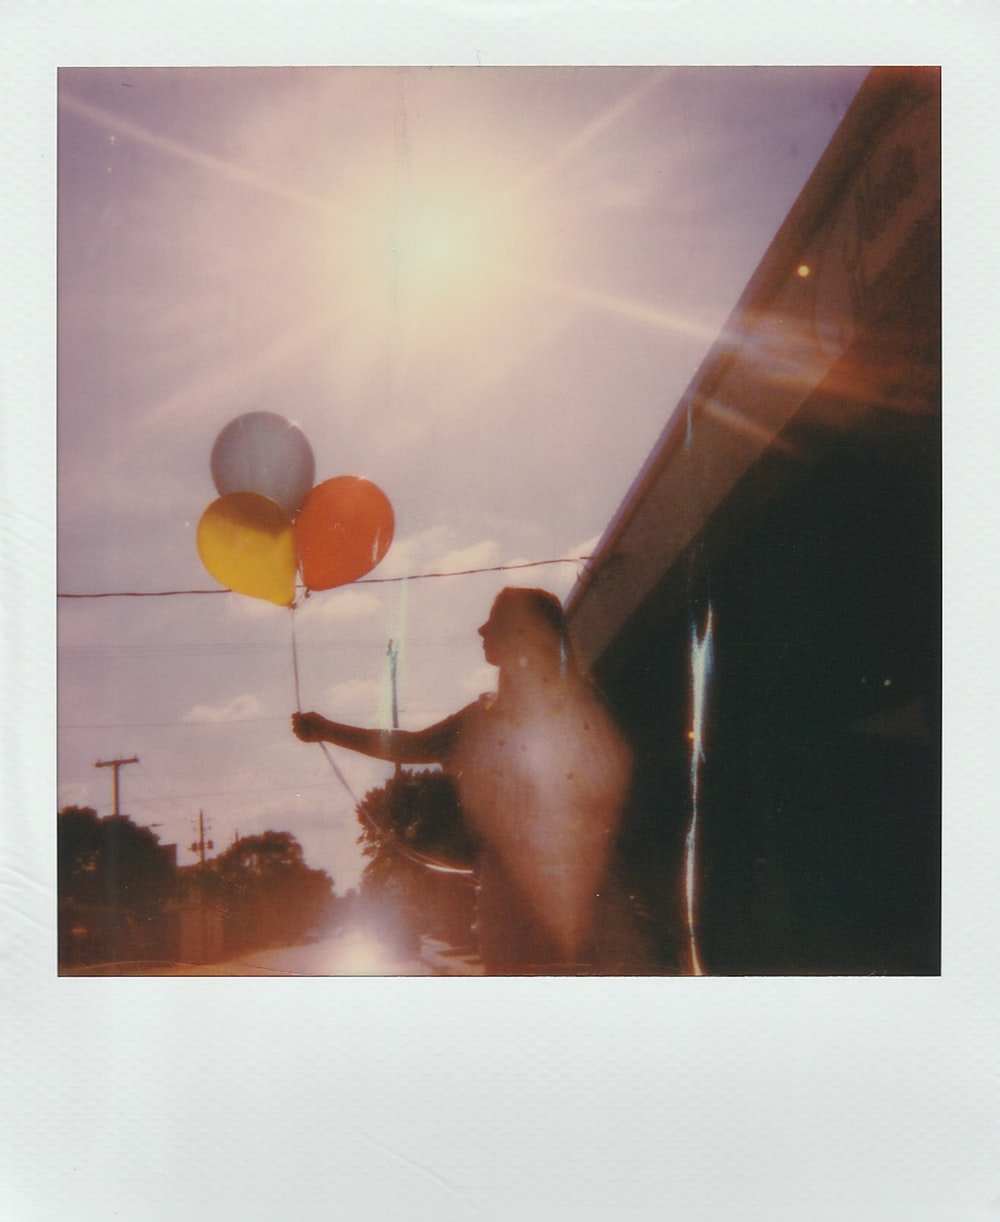 750 Polaroid Pictures Hq Download Free Images On Unsplash